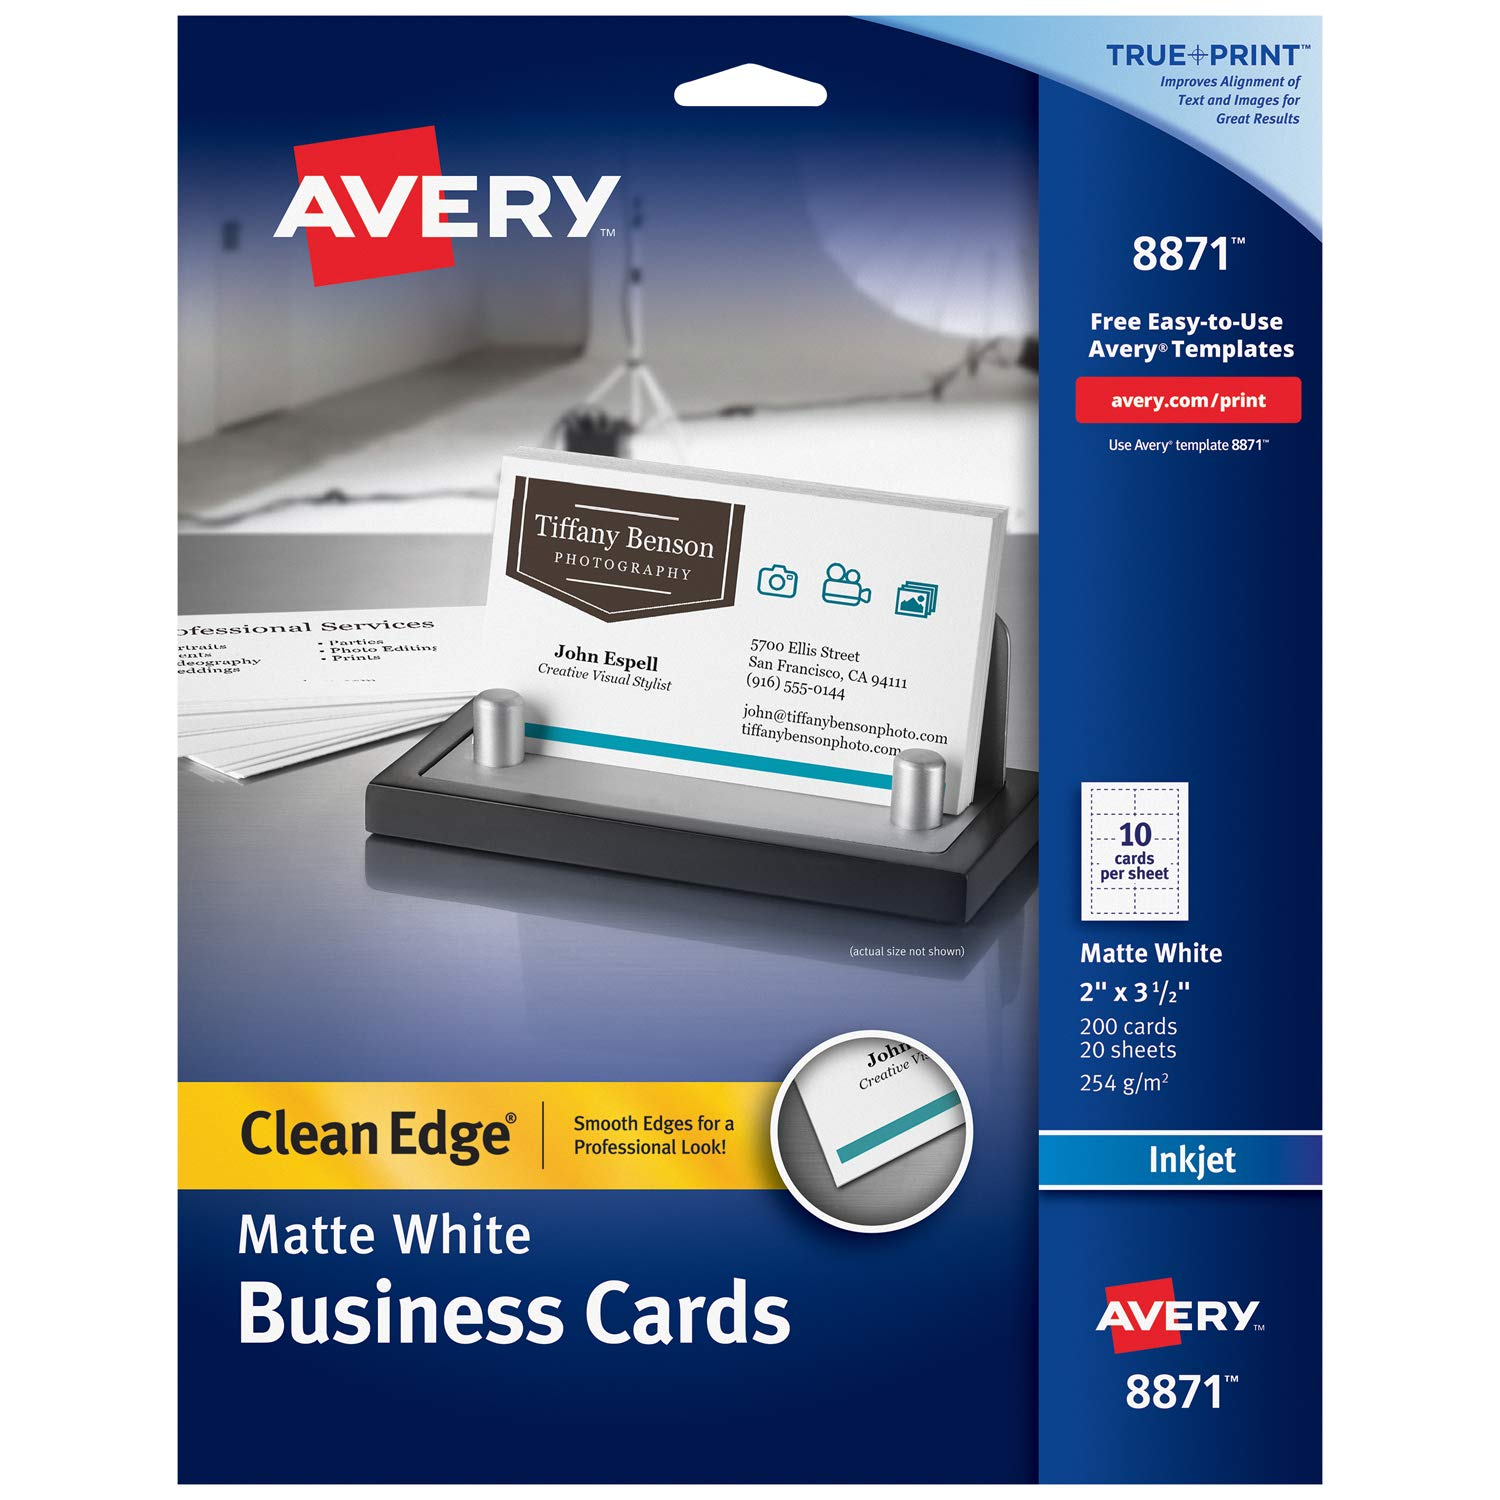 Amazon.com : Avery Printable Business Cards, Inkjet Printers, 200 ...